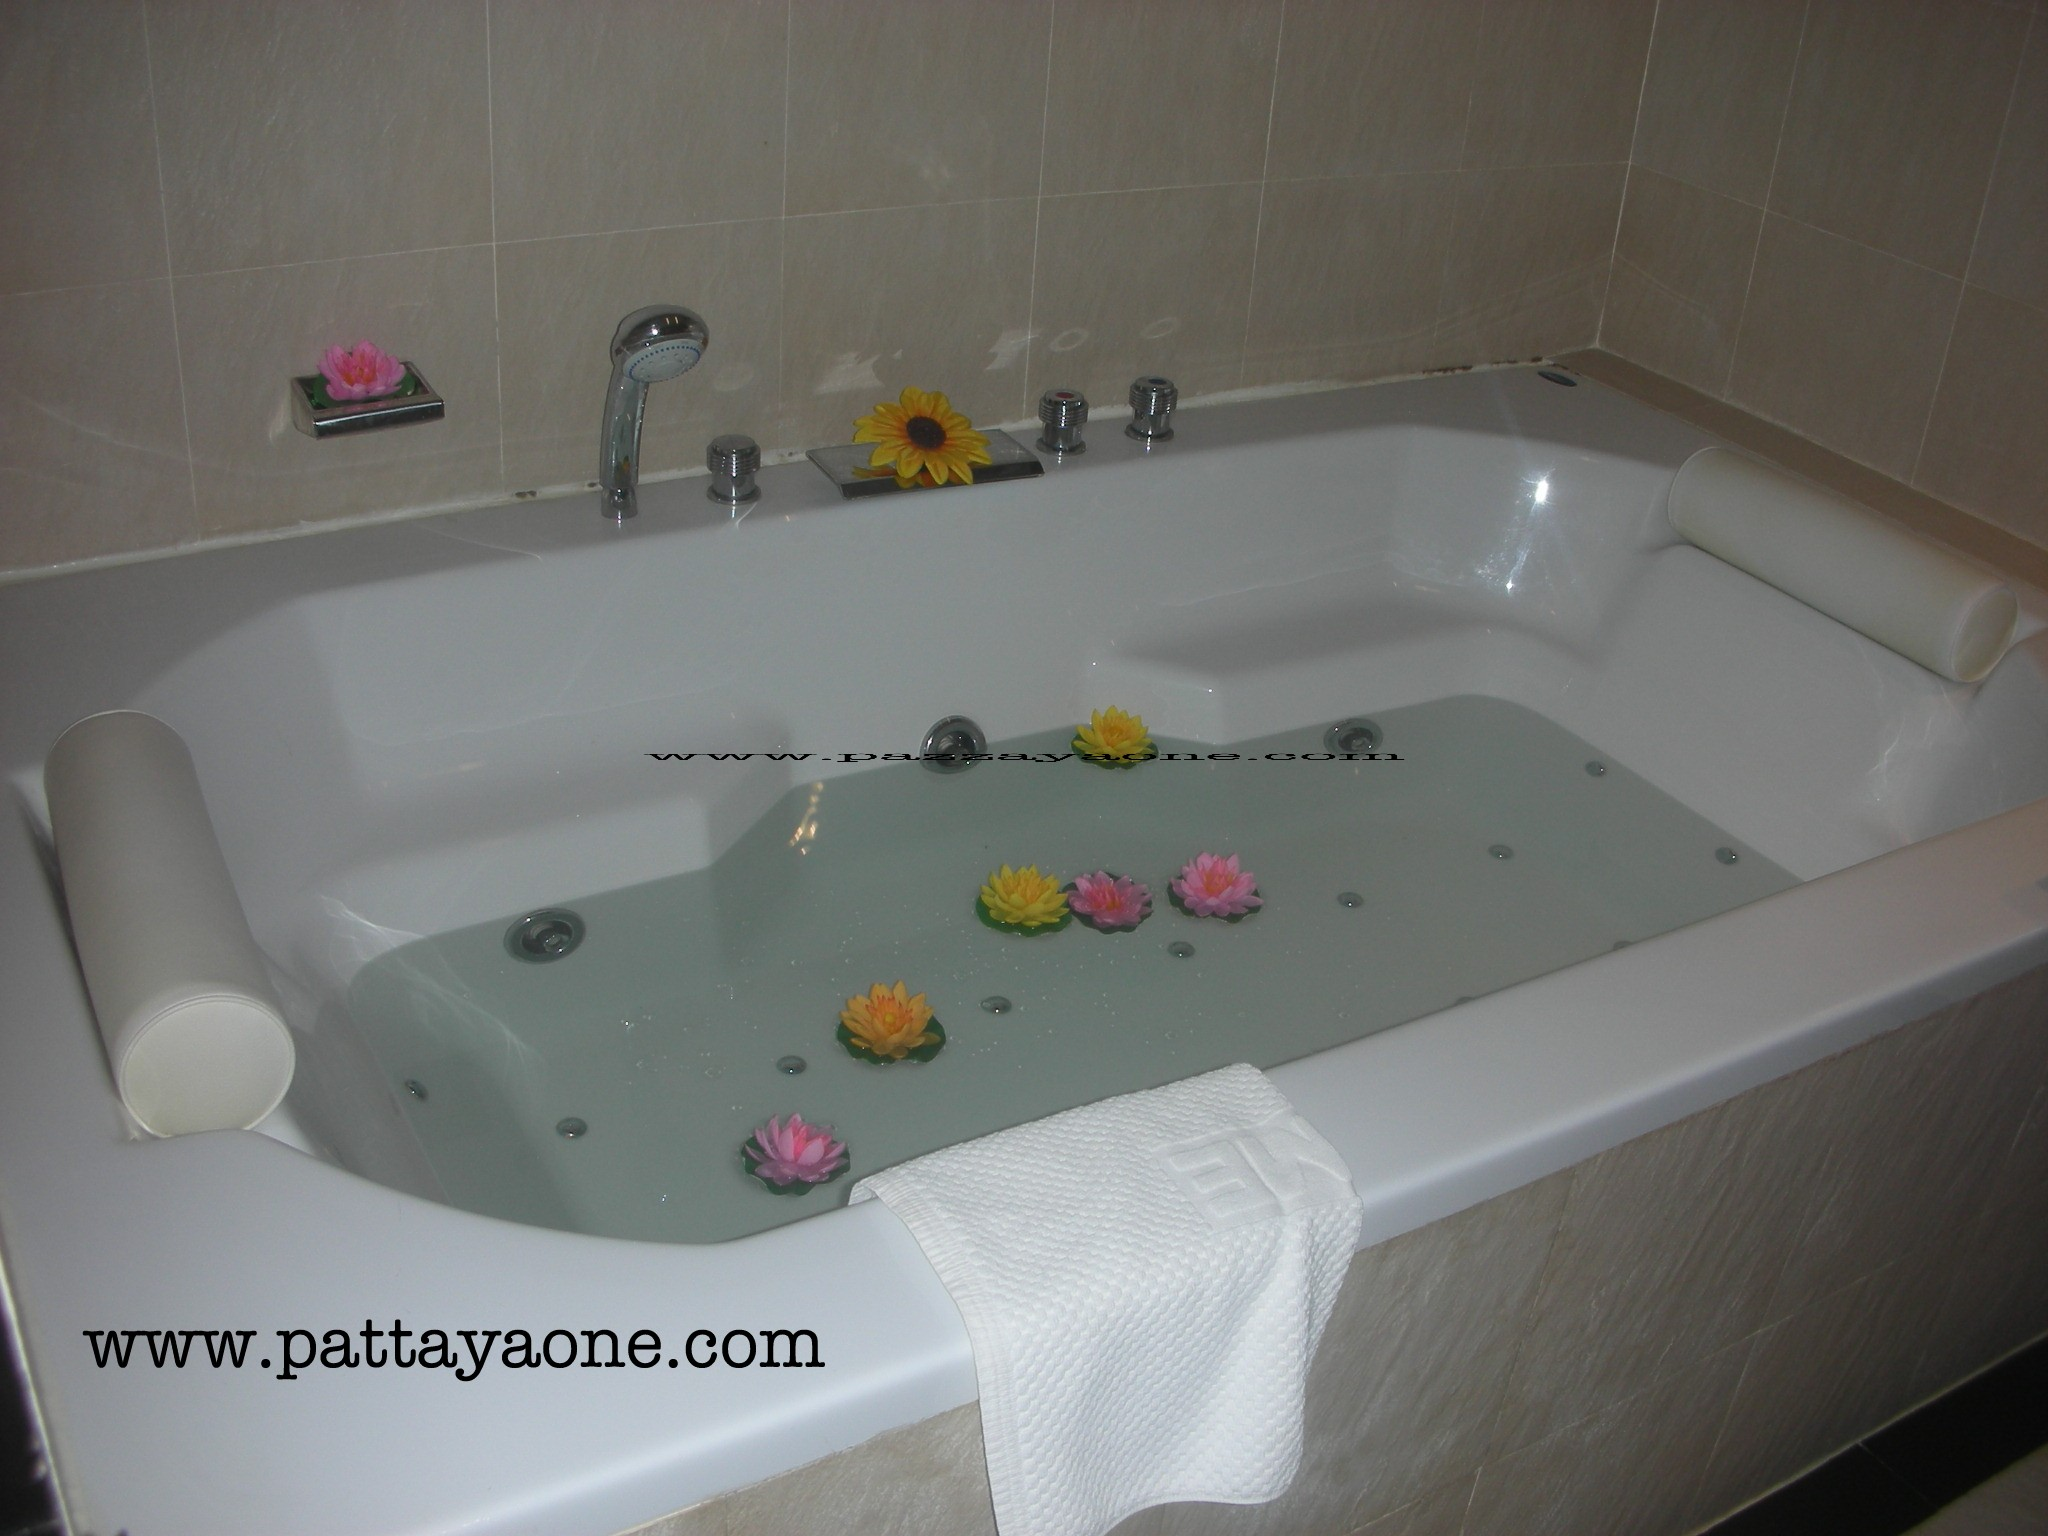 Rooms with jacuzzi www.pattayaone.com